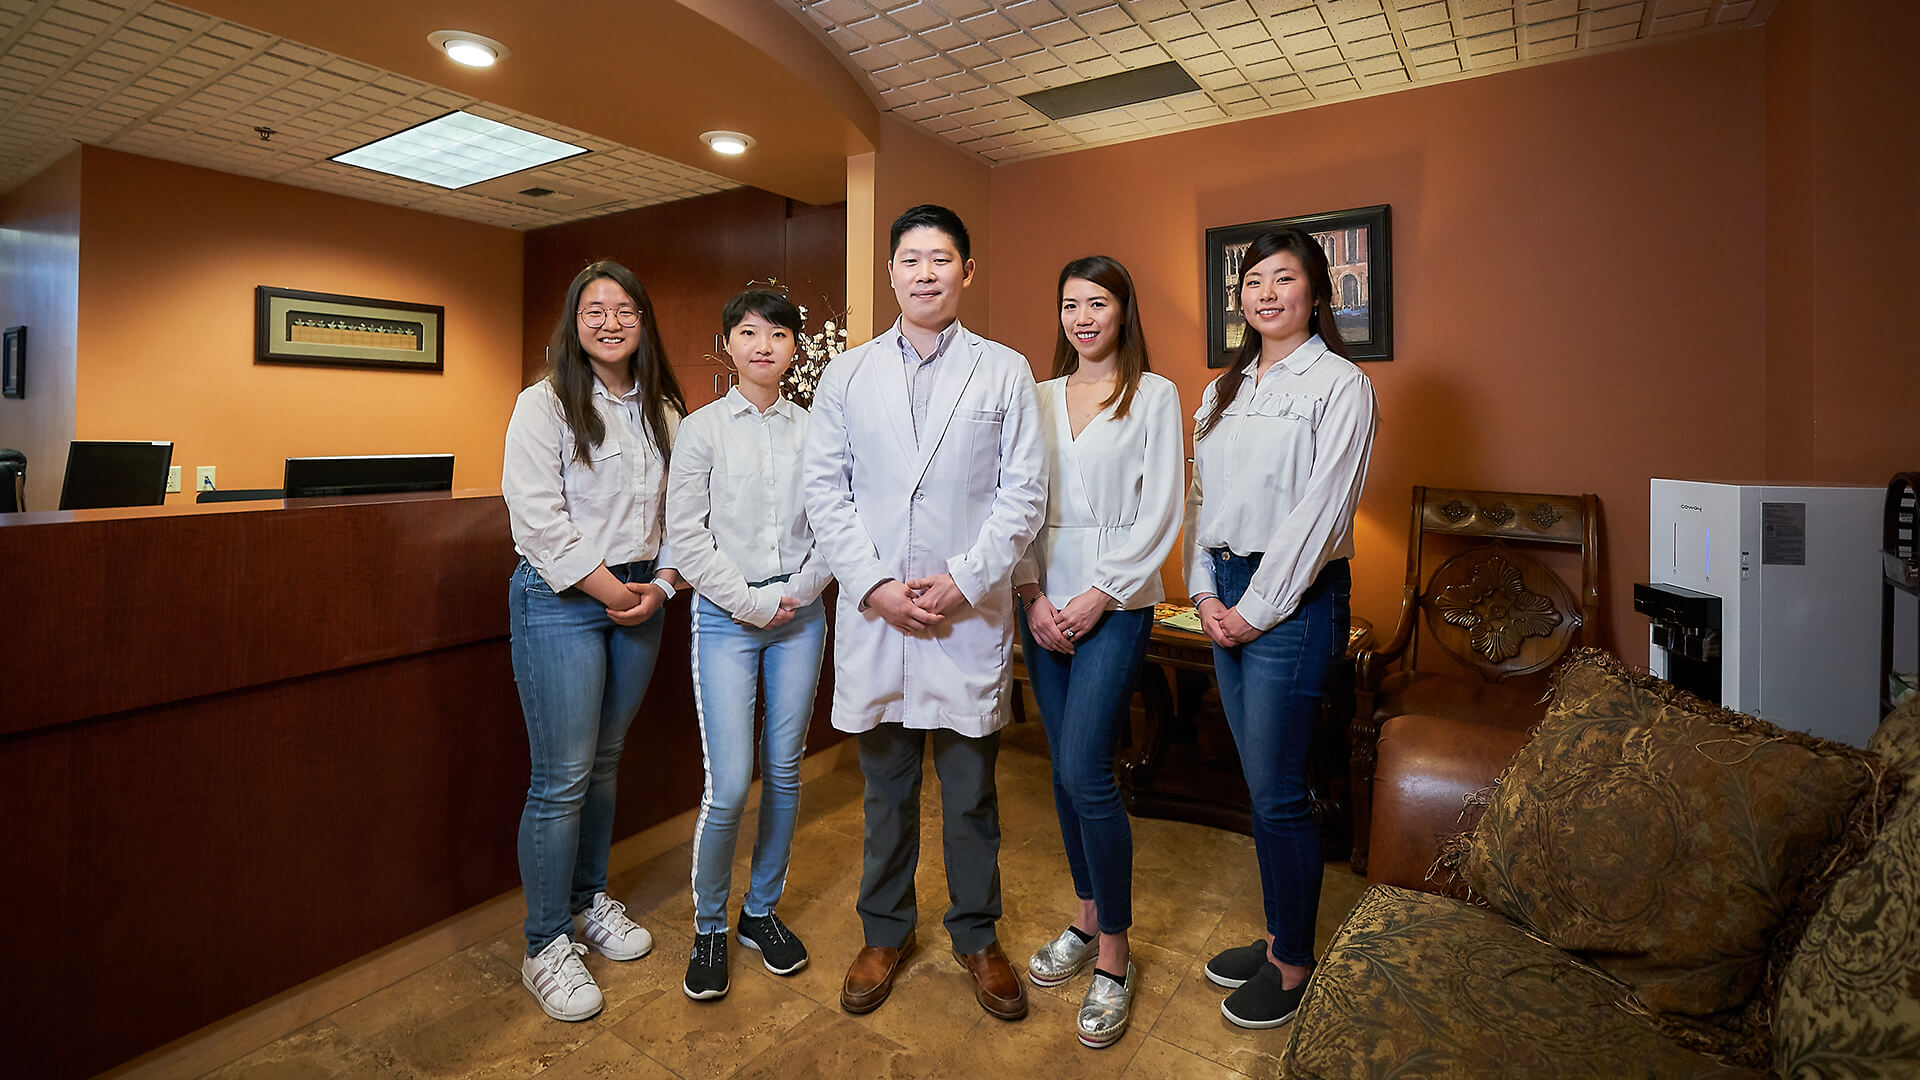 Dr. Hu and his four female dental assistants smiling inside the dental office